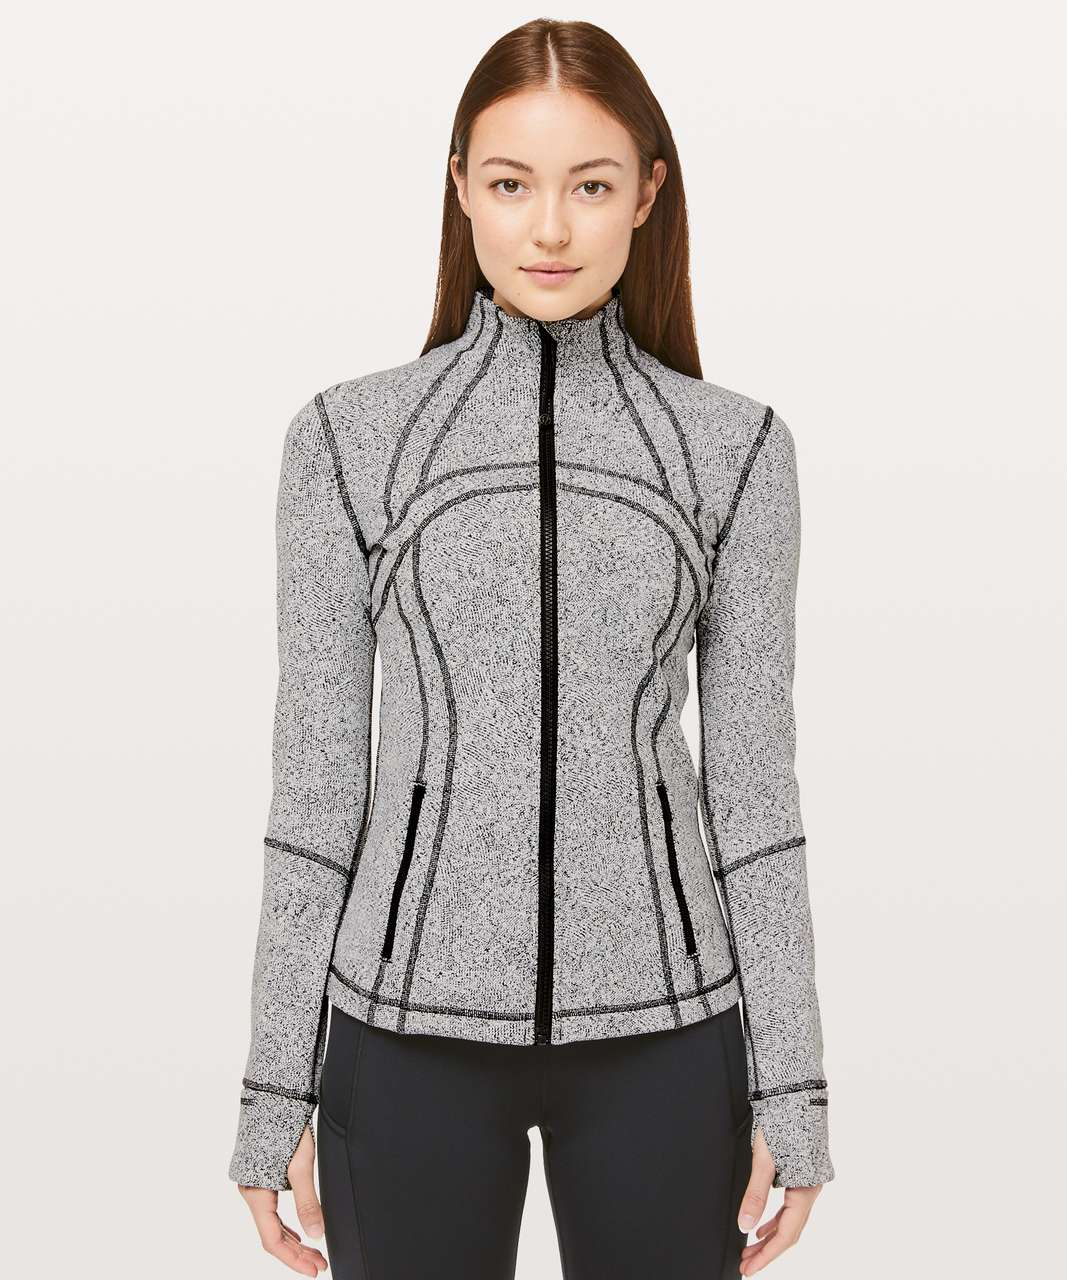 Lululemon Define Jacket - Inverted Feathered Jacquard White Black